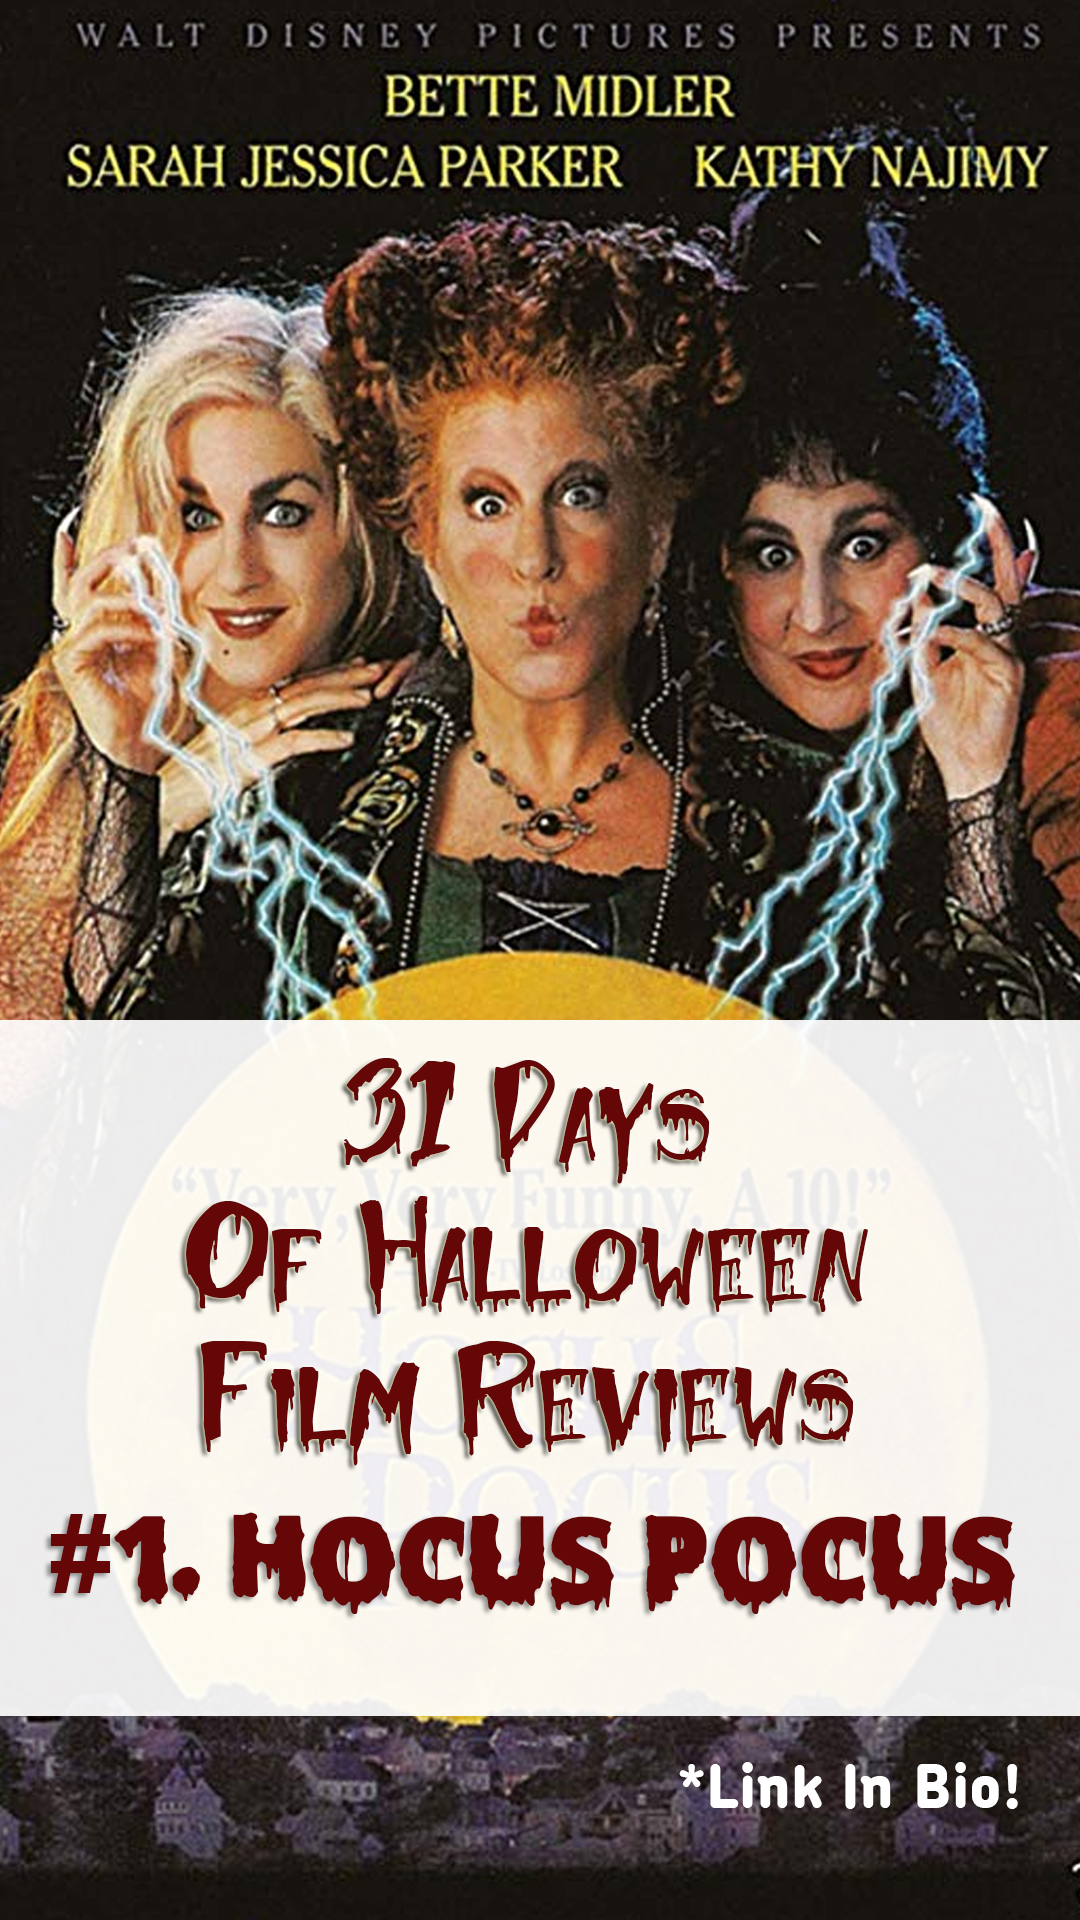 Hocus Pocus Film Review